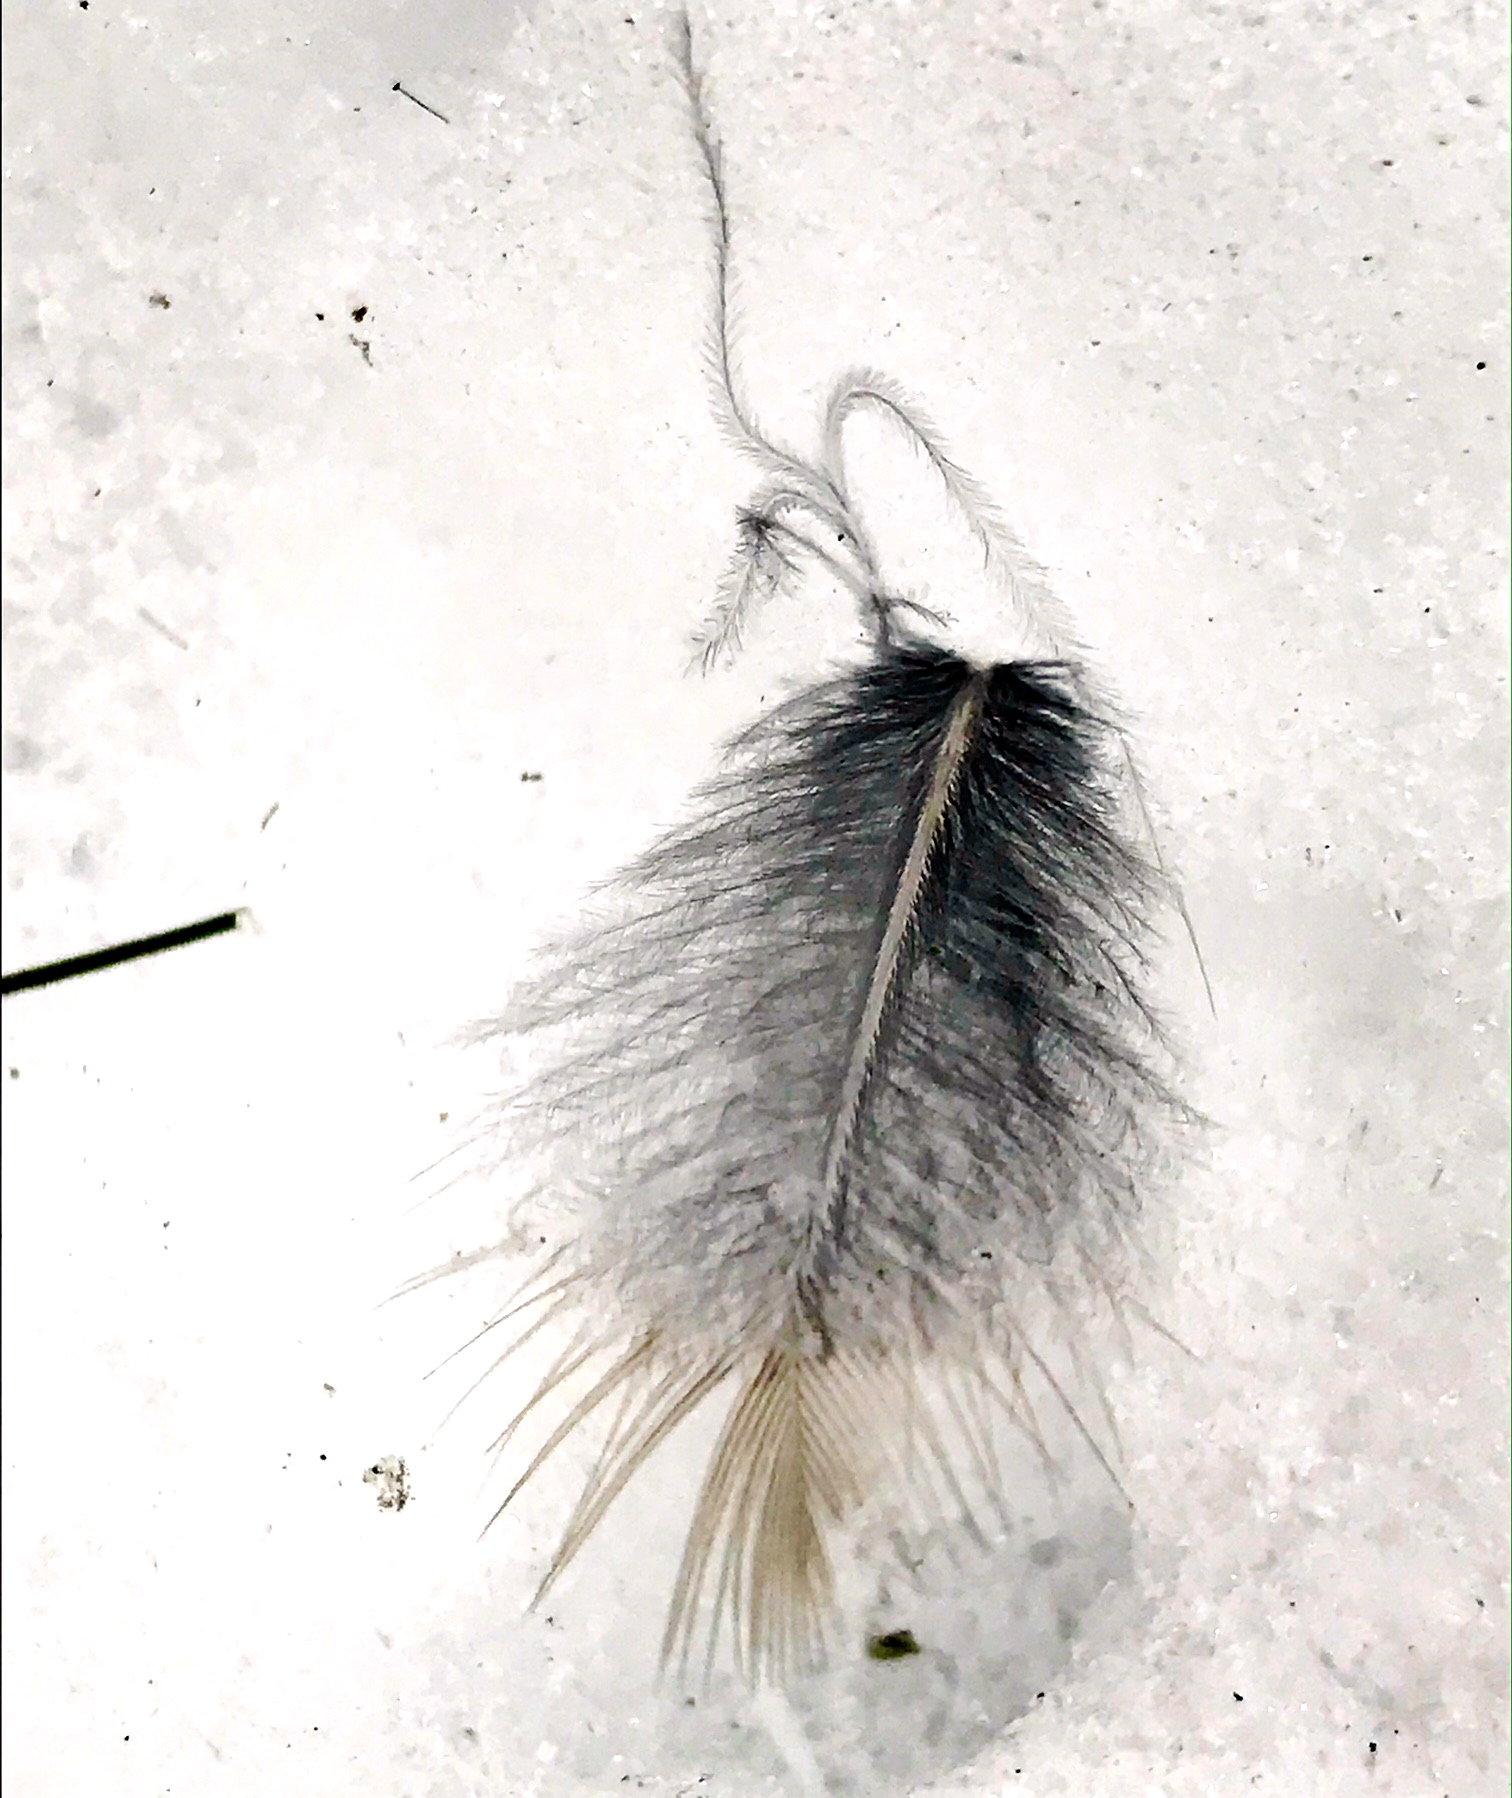 Feather found lying in snow footprint, Rocky Narrows woods